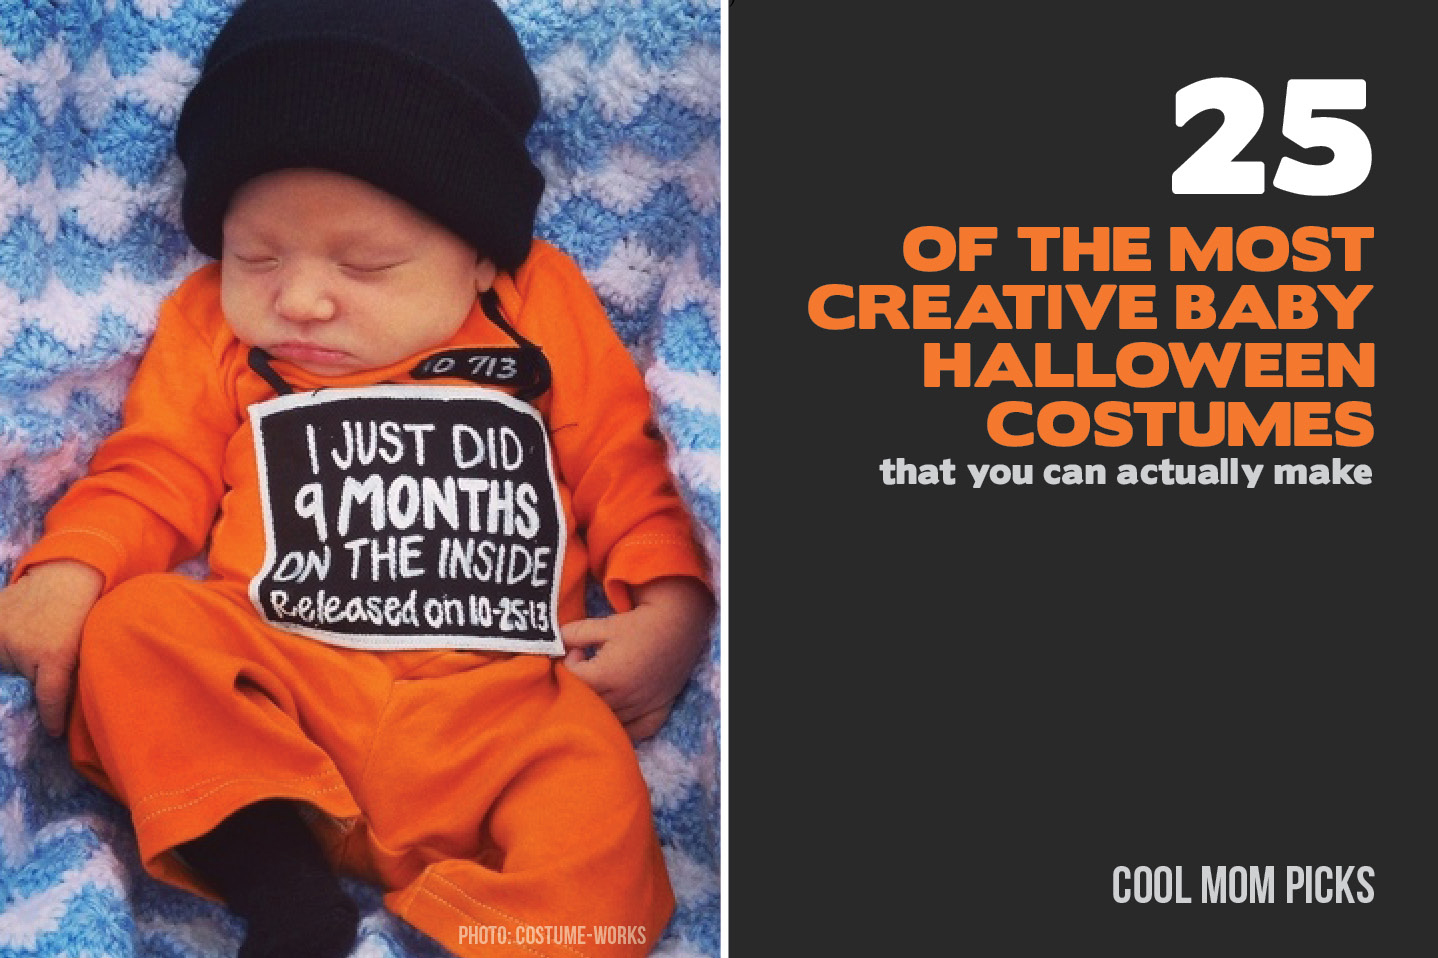 25 of the most adorably creative diy baby costumes for halloweenthat you can actually